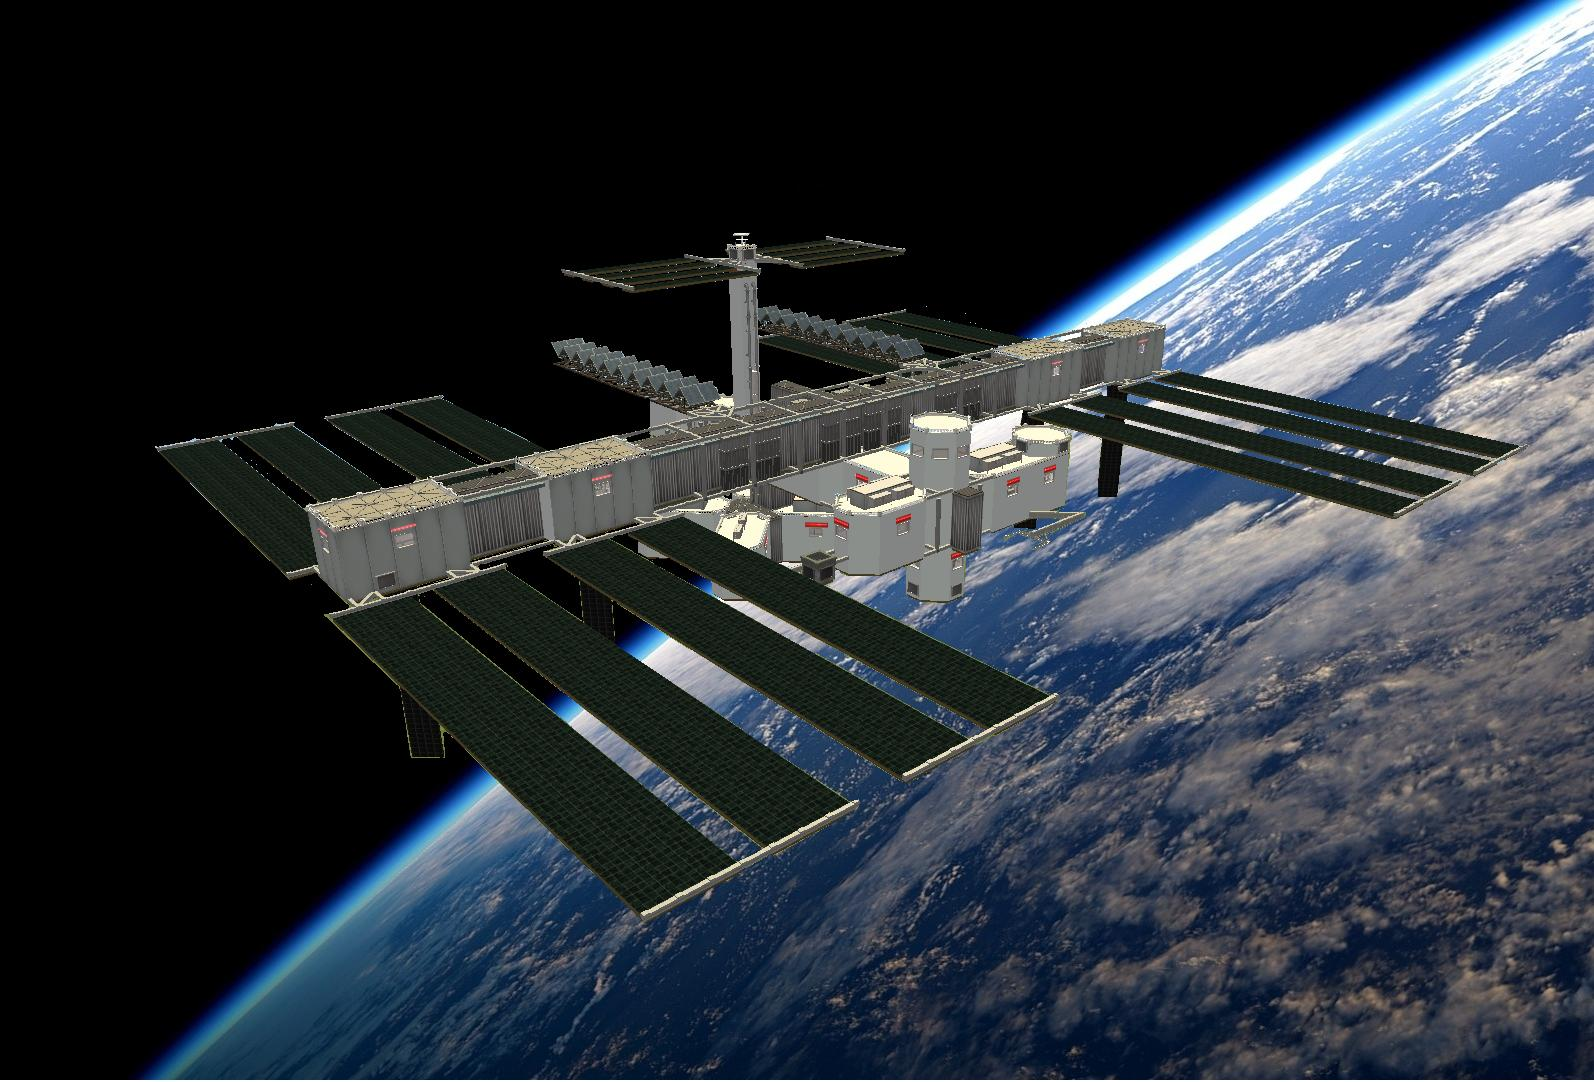 Mod The Sims - International Space Station - NO CC